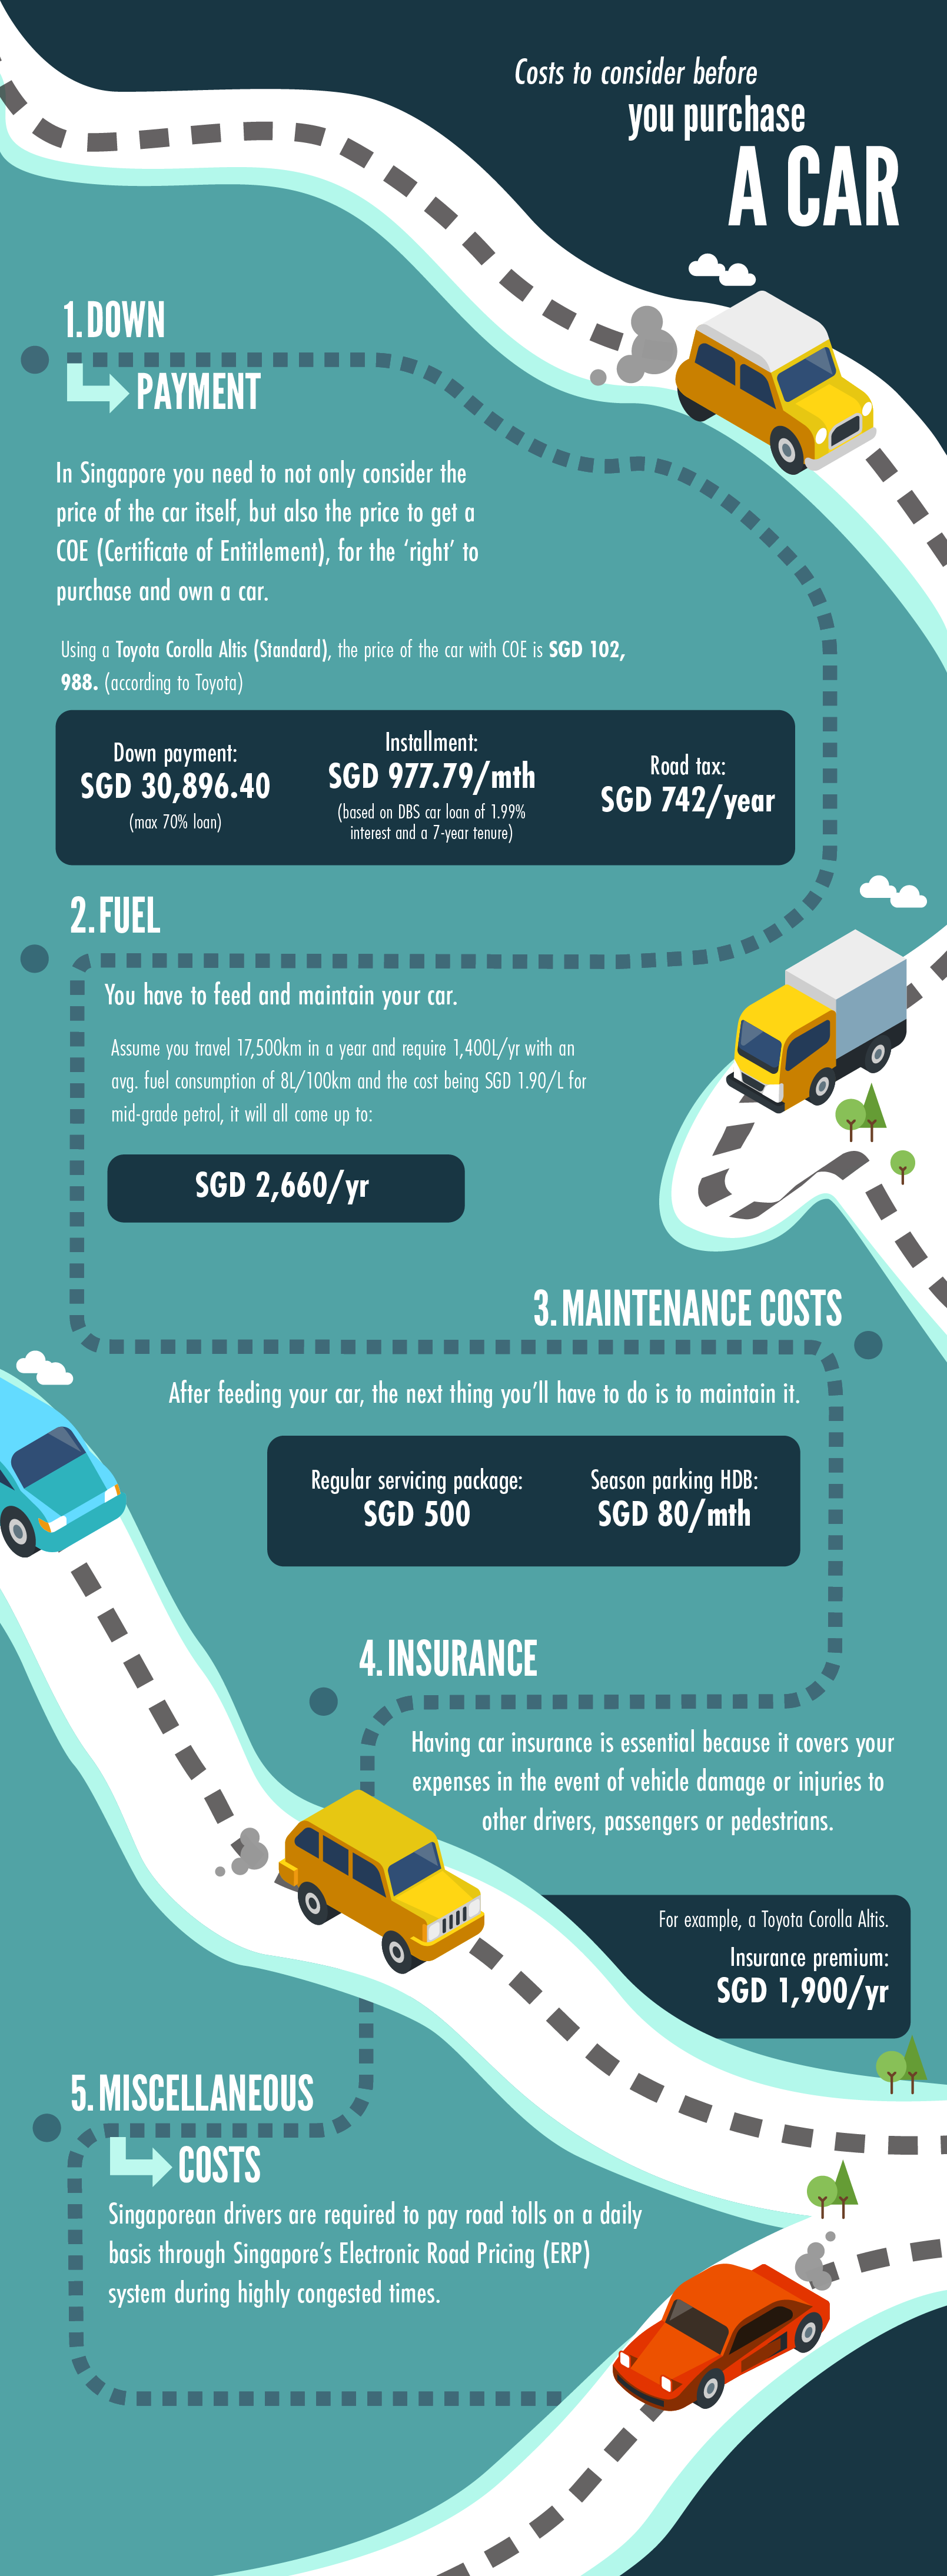 19 000 Per Year To Own A Car In Singapore Here S The Cost